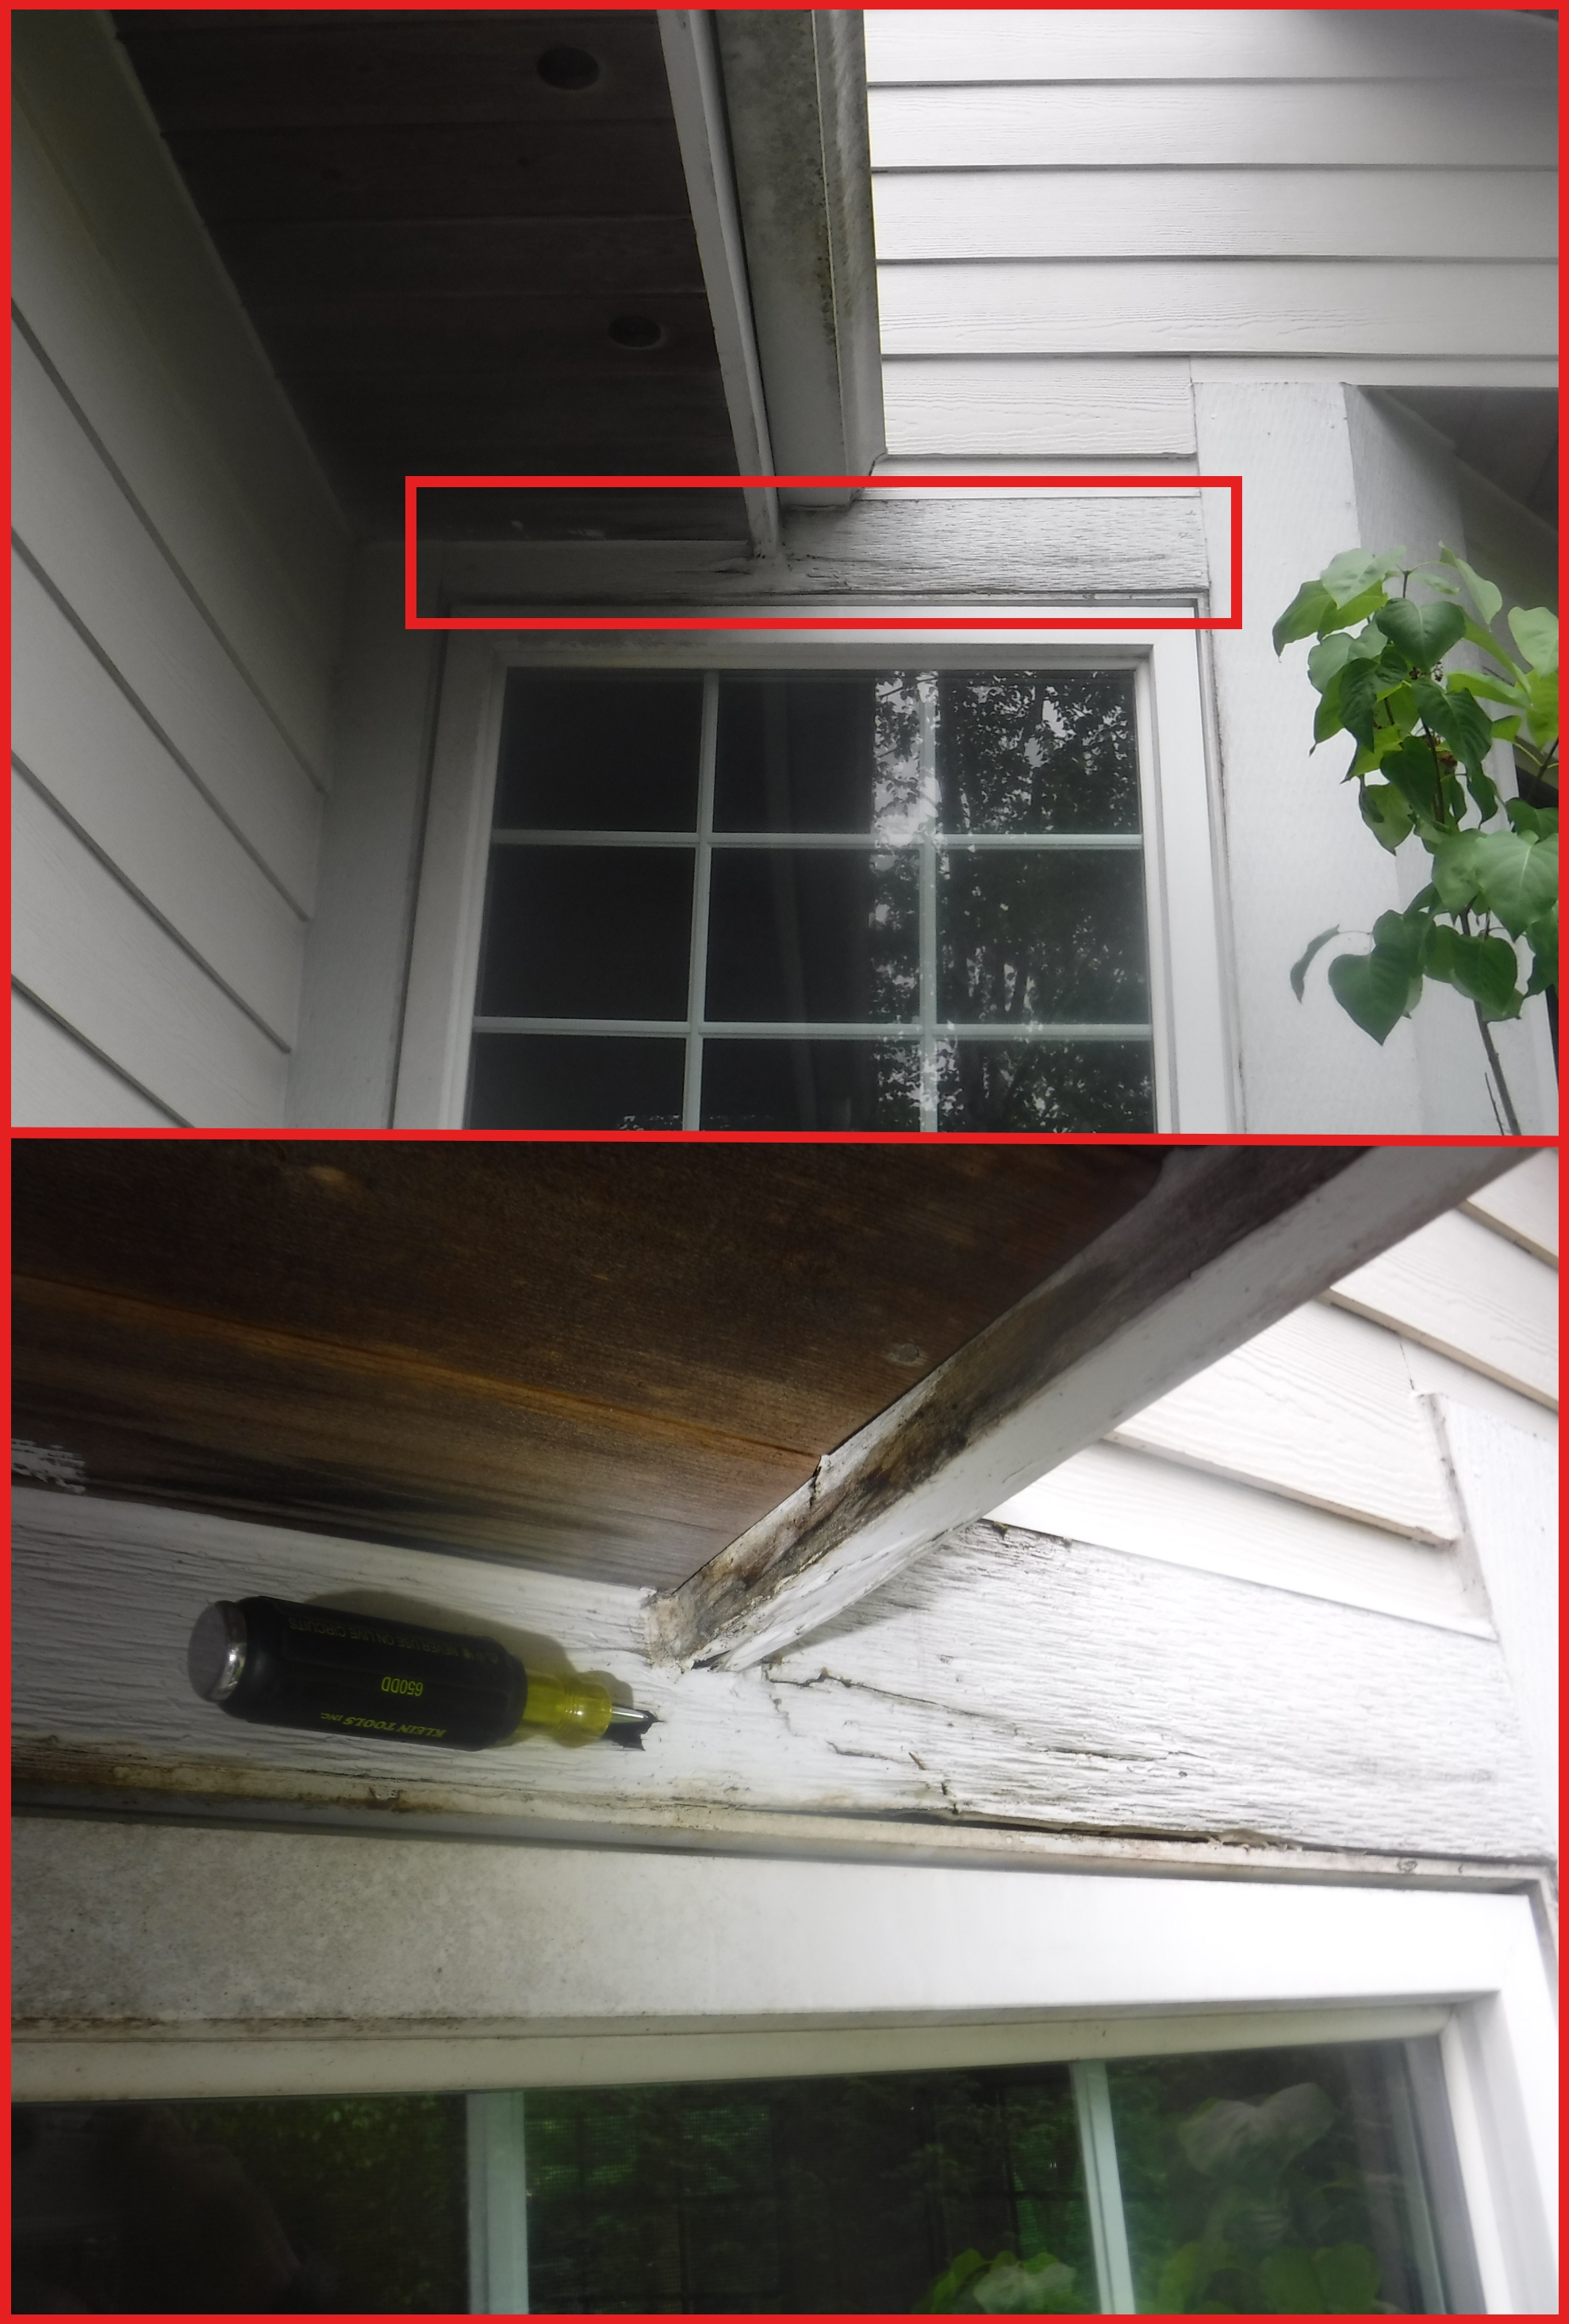 Puyallup-home-inspector-kickout5.jpg